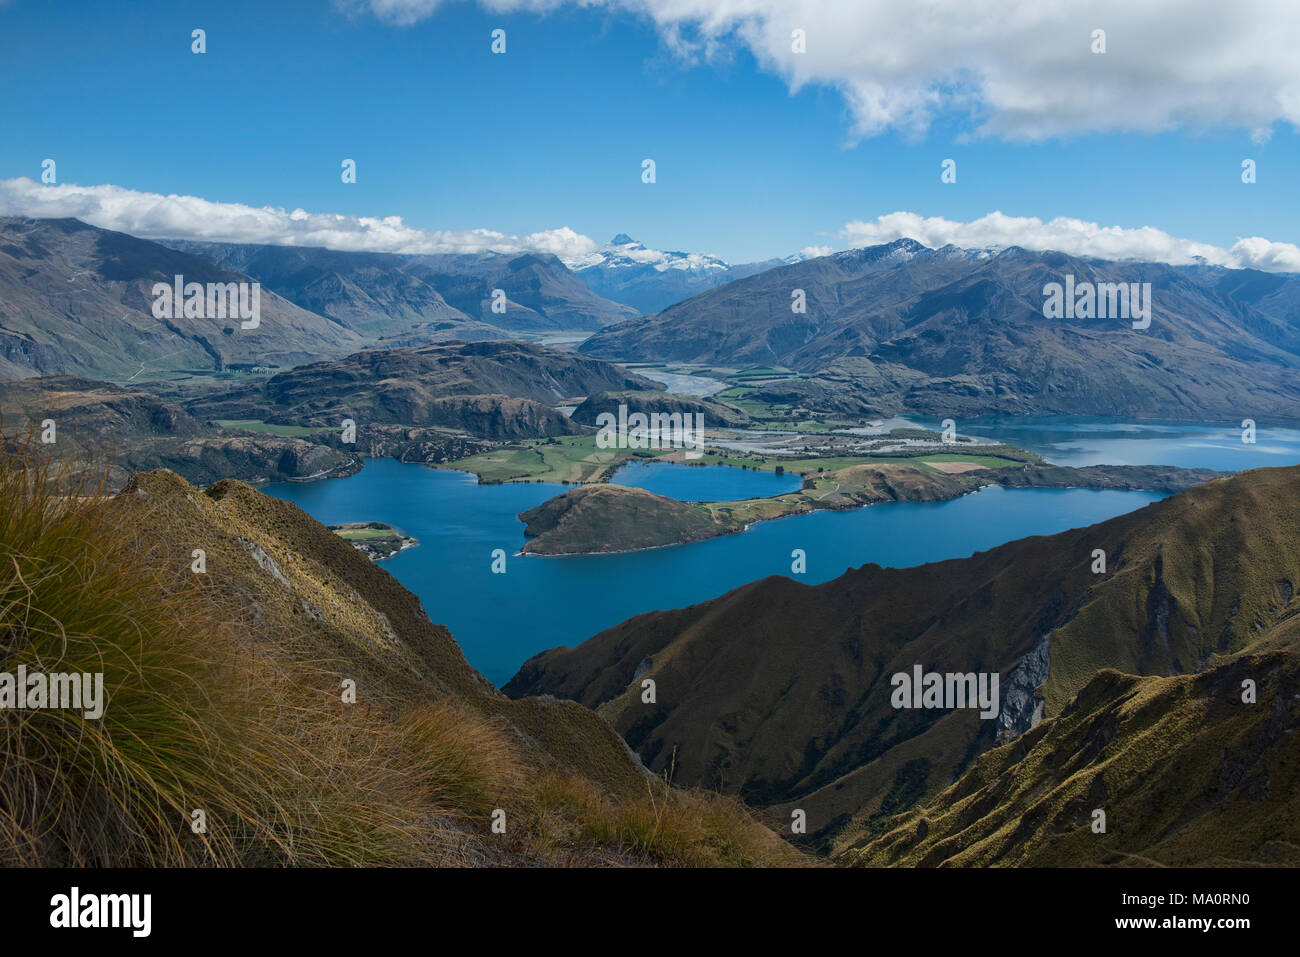 Tremendous views of Lake Wanaka and Mount Aspiring from Roy's Peak, Wanaka, New Zealand Stock Photo